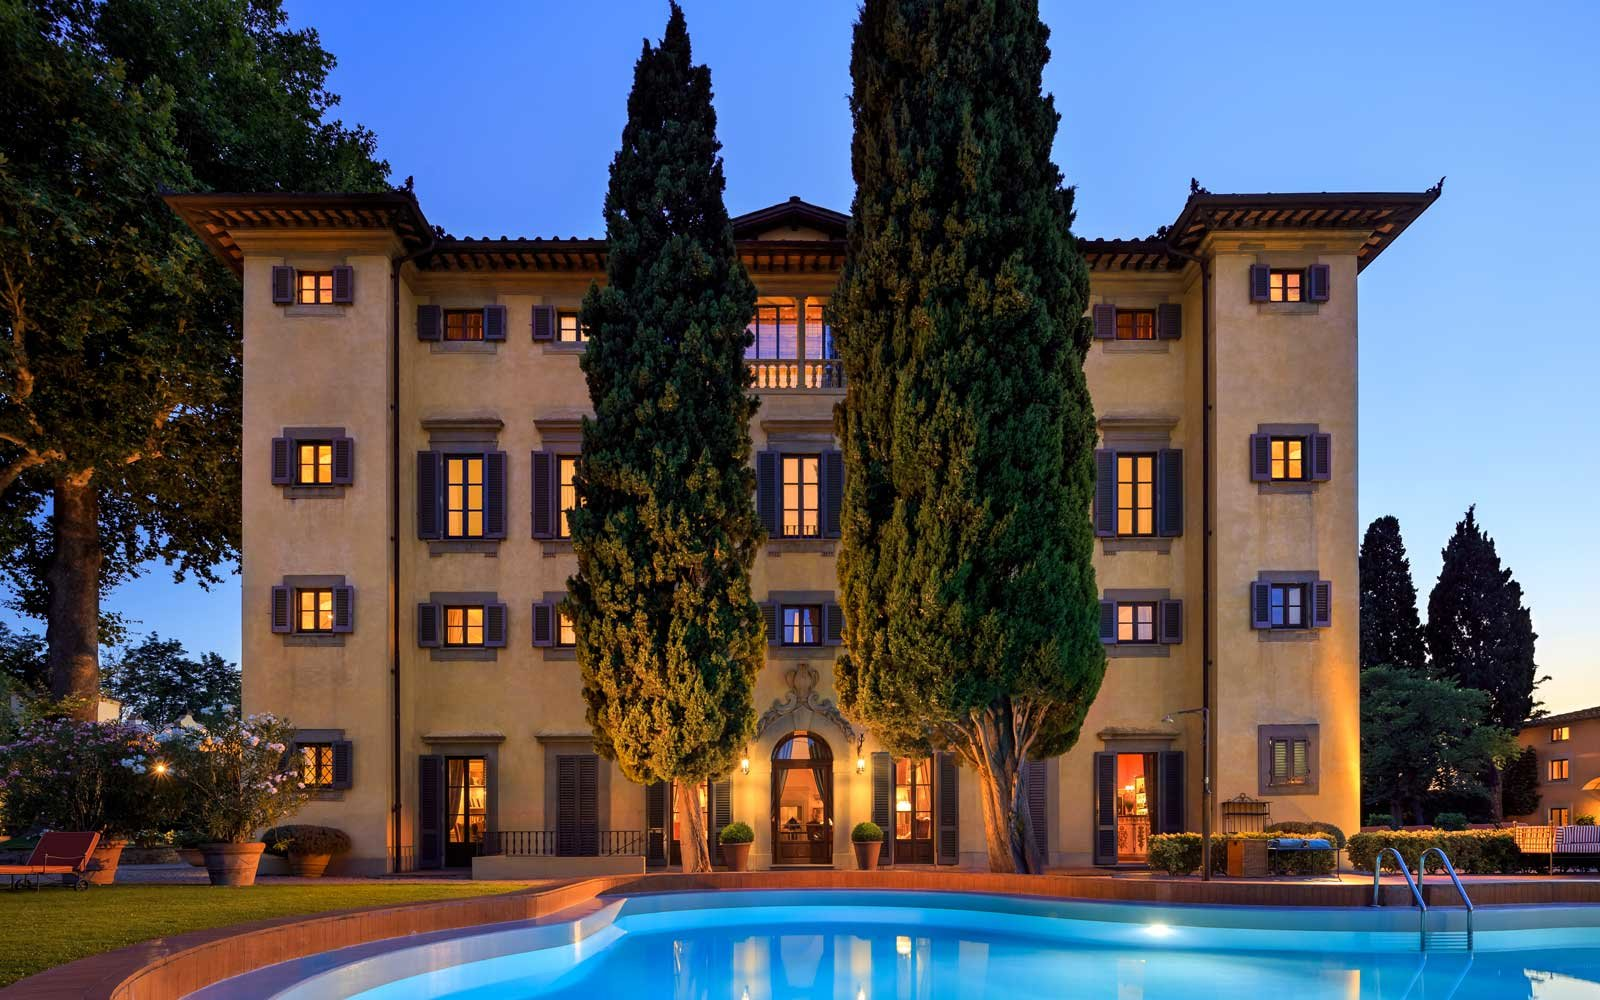 Get 30% off Stays in a Former Medici Villa in Tuscany